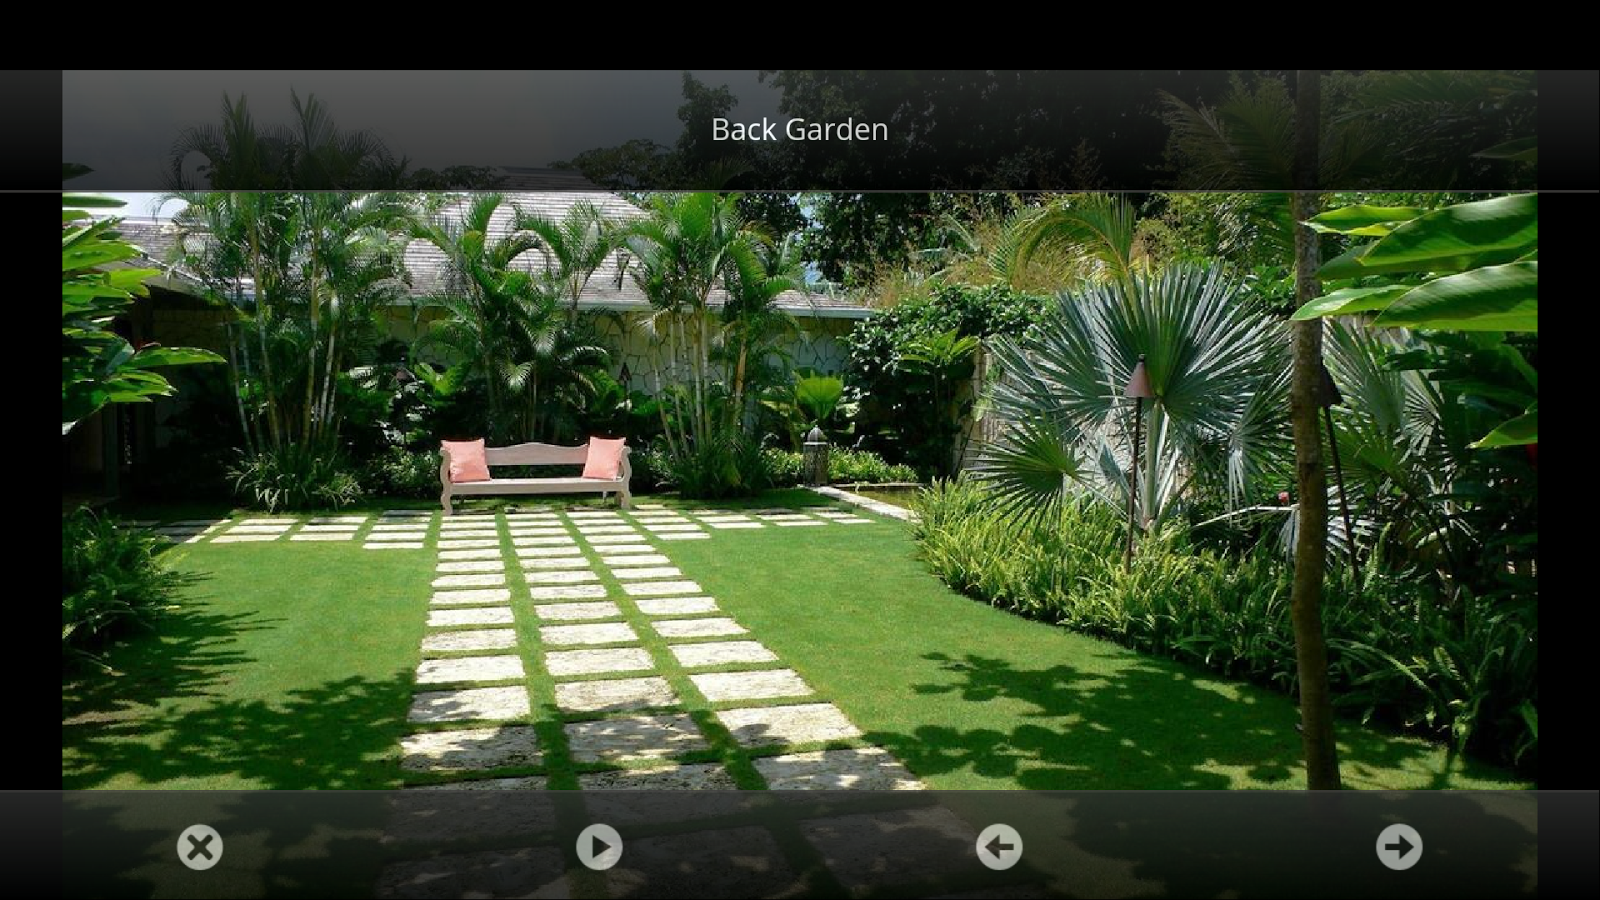 Landscape garden decor android apps on google play for Garden design your own